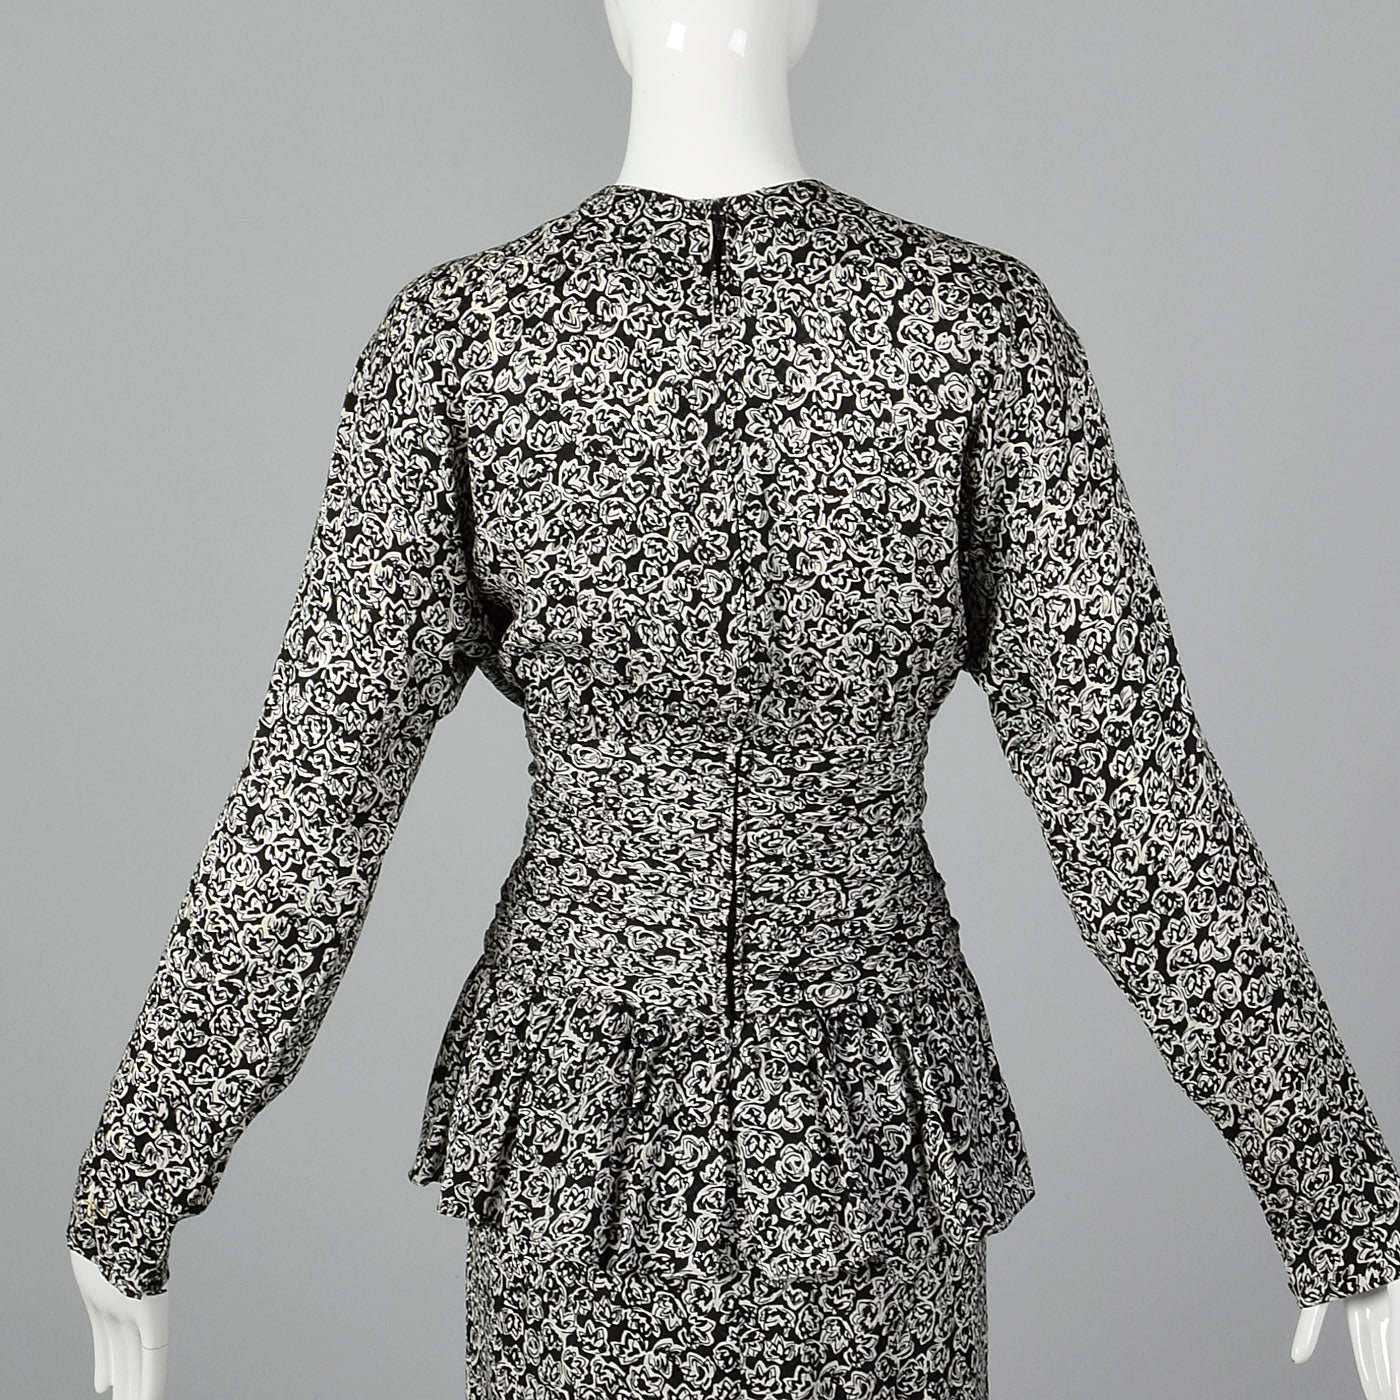 1980s Christian Dior Black and White Dress